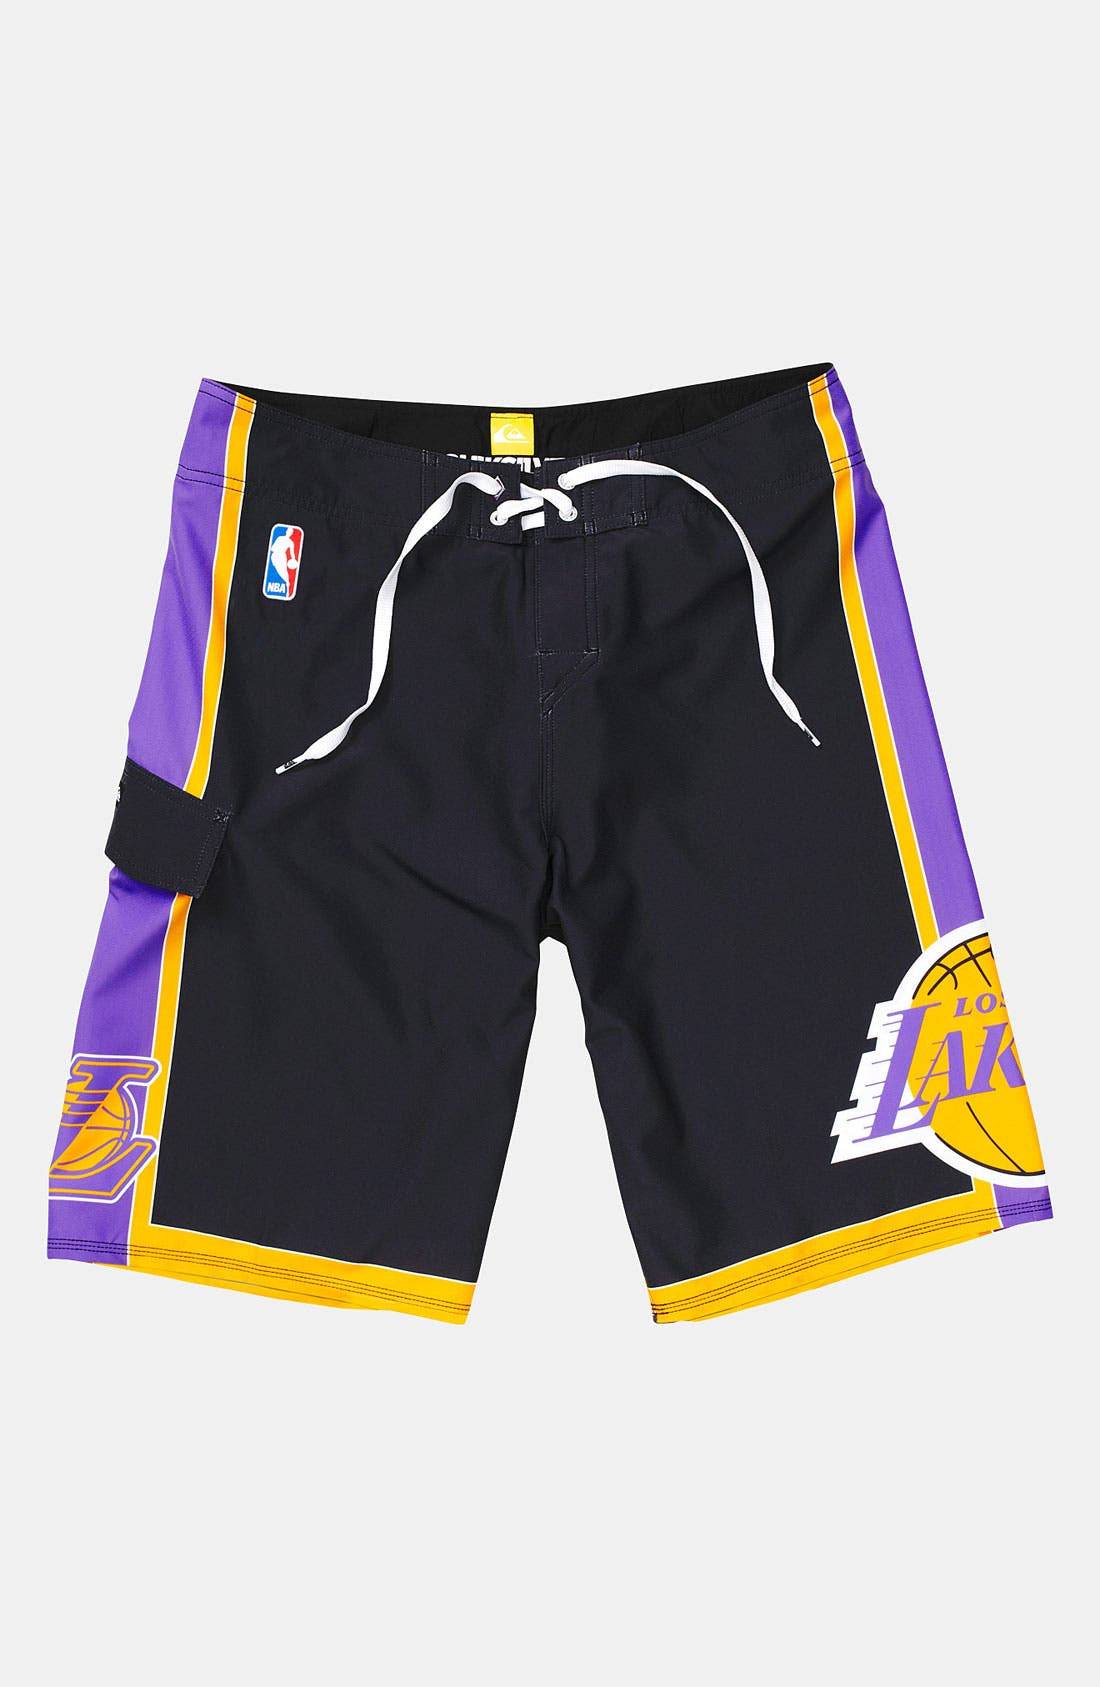 Alternate Image 1 Selected - Quiksilver 'Lakers' Board Shorts (Big Boys)